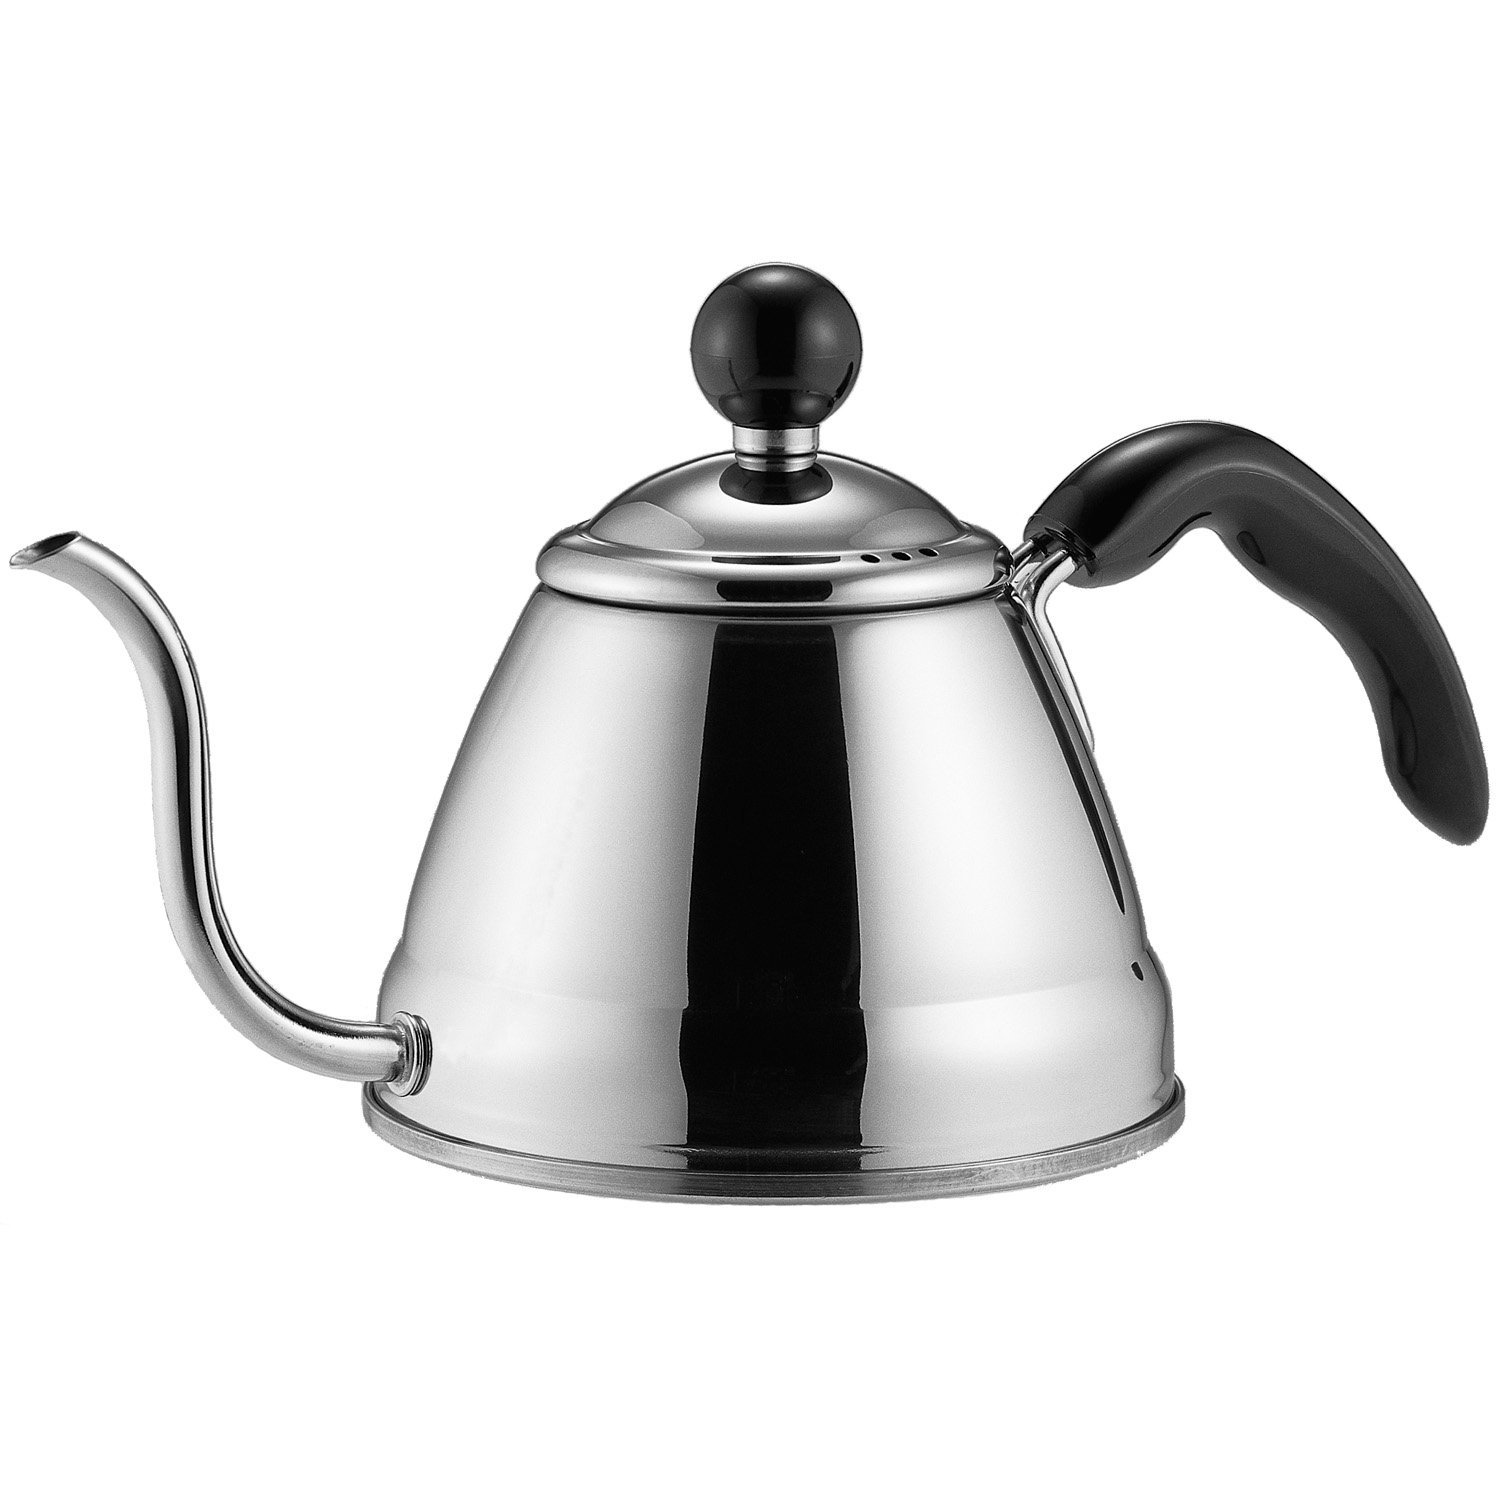 Fino 6576 Pour Over Coffee and Tea Kettle, 4 1/4-Cup, Silver